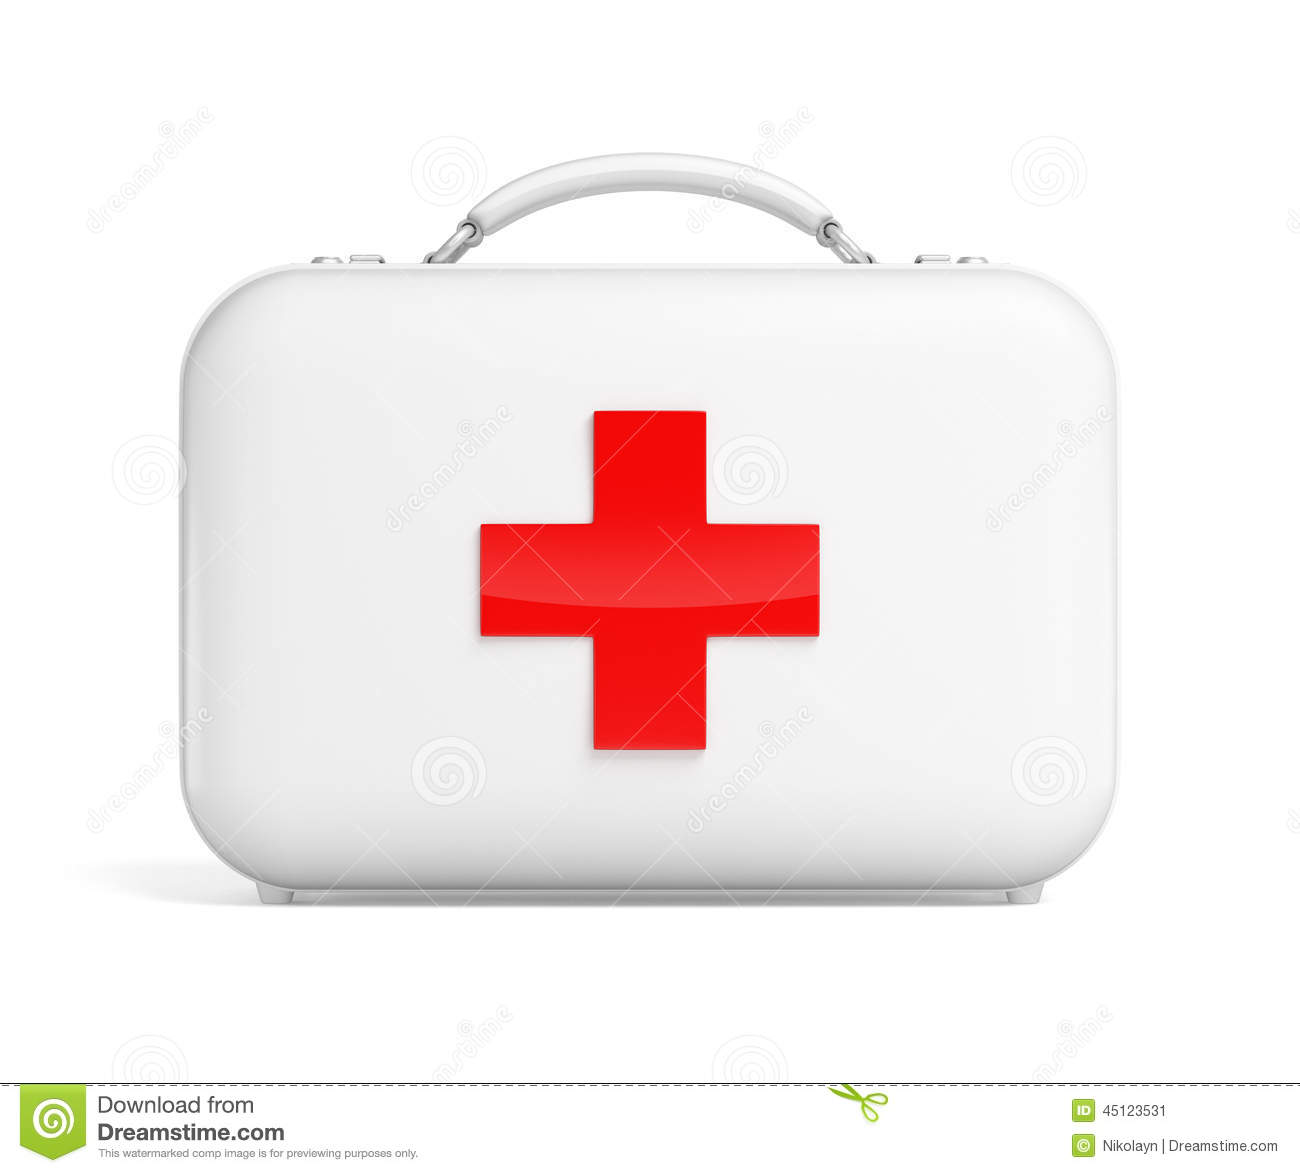 First aid kit bag with red cross isolated on white.